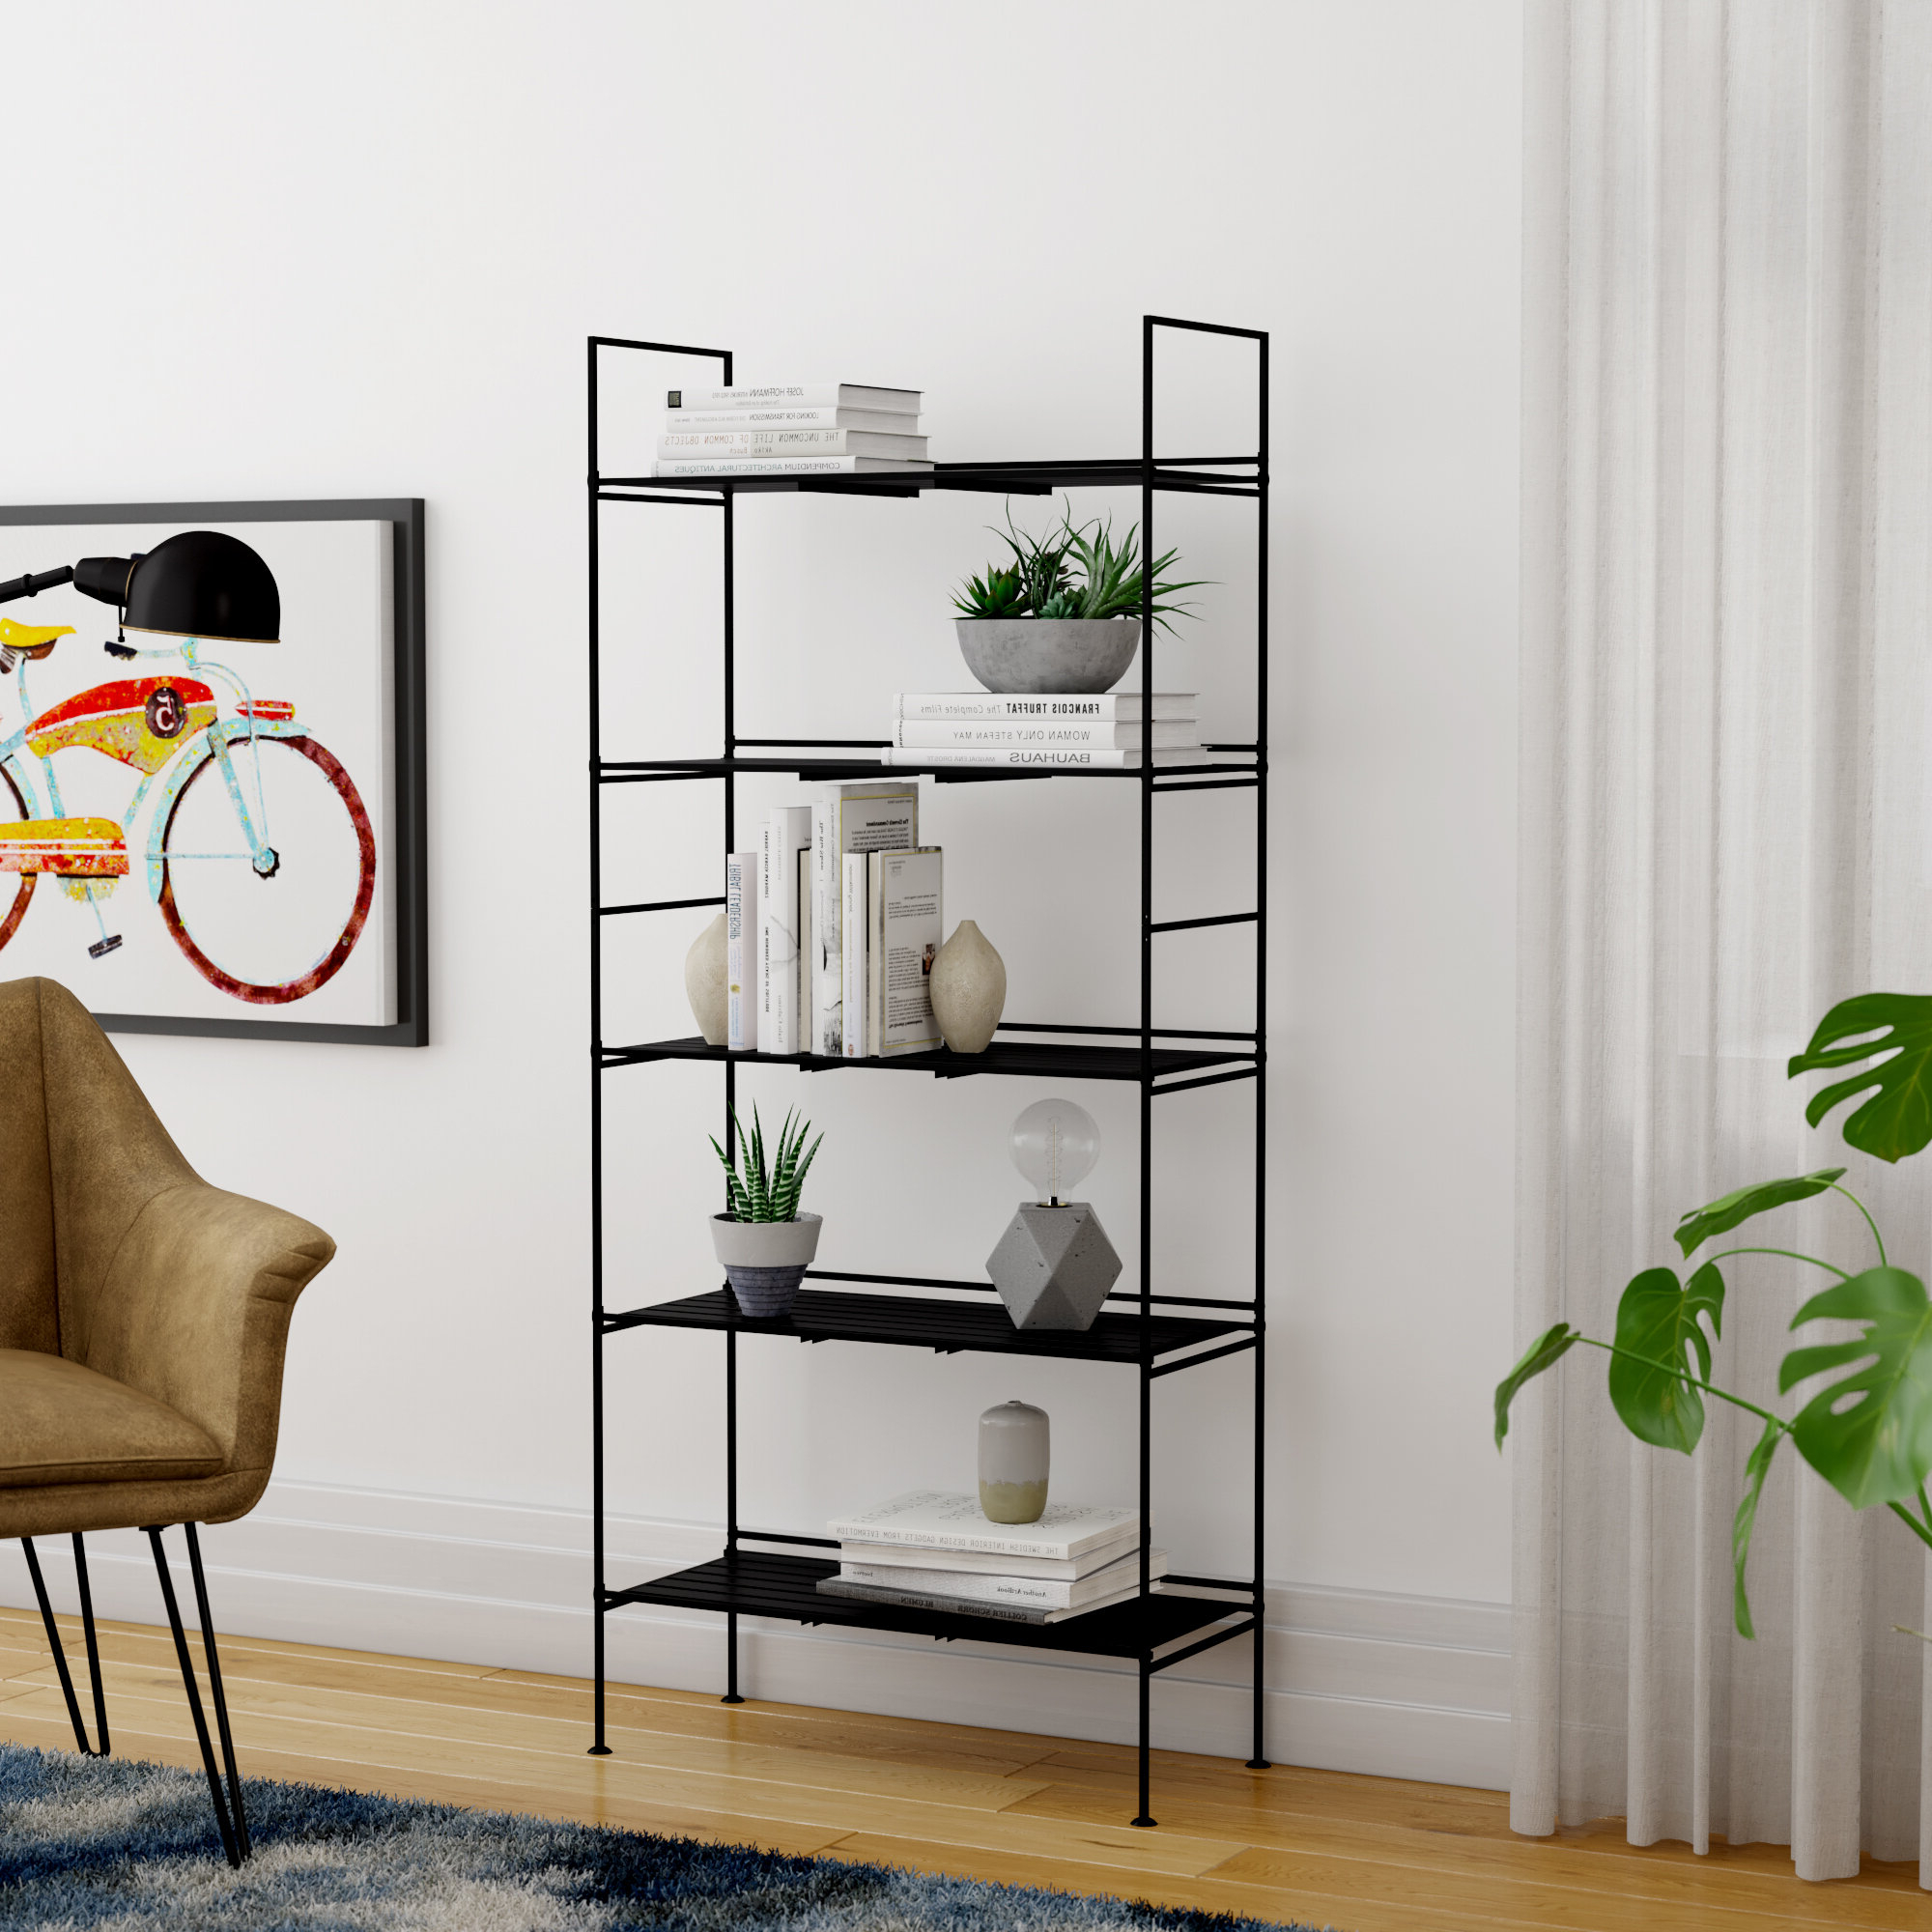 Bowman Etagere Bookcases Within Recent Mariano Etagere Bookcase (View 4 of 20)